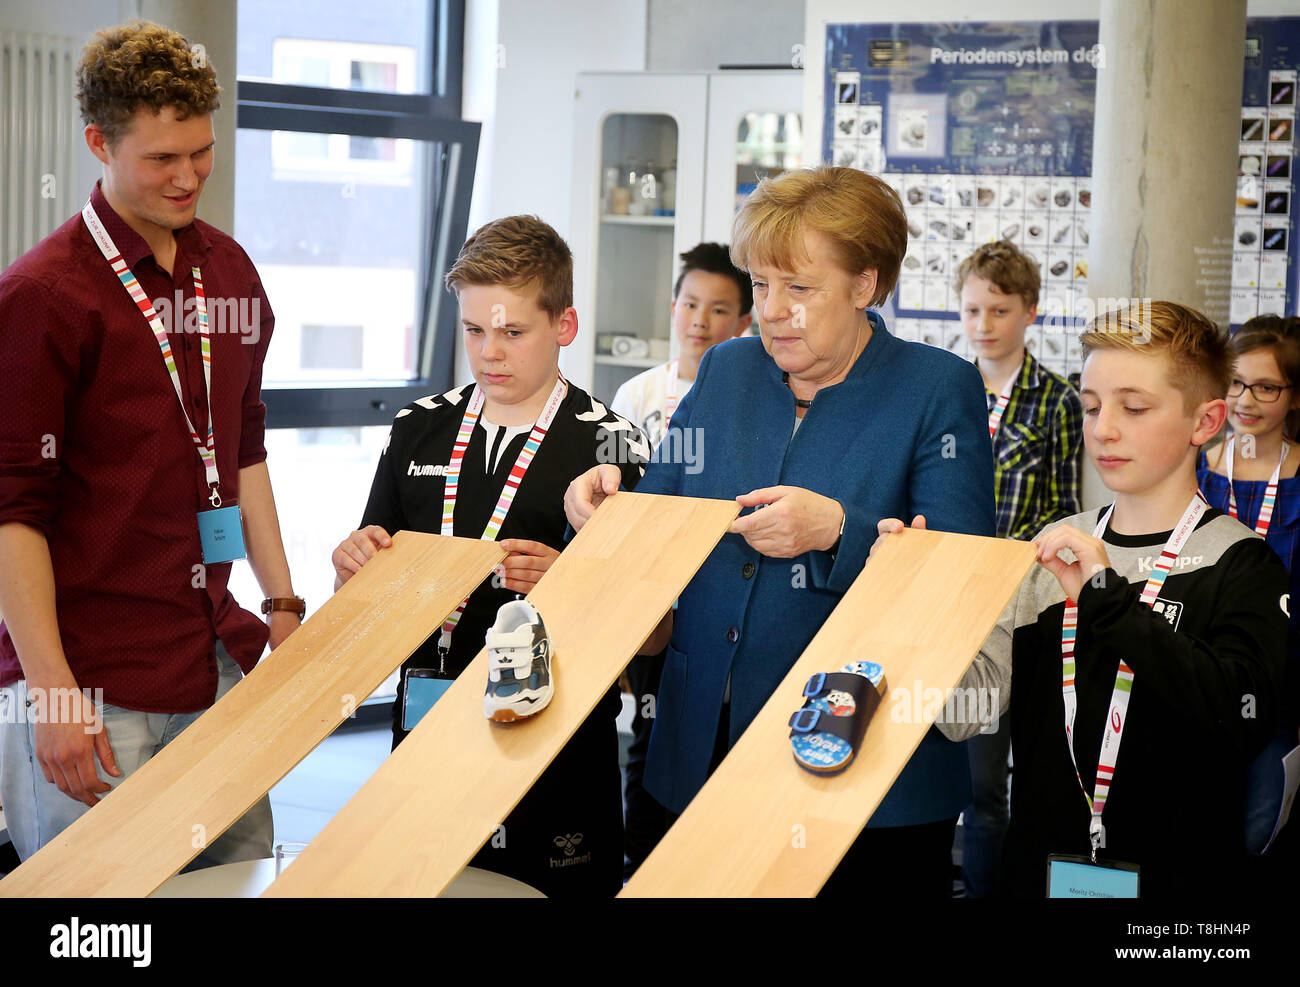 Wuppertal, Germany. 13th May, 2019. Chancellor Angela Merkel (M, CDU) conducts an experiment with the students at the Junior University on the slip resistance of surfaces. The Wuppertal Junior University is a nationwide unique extracurricular educational and research institution for 4 to 20 year olds. Credit: Oliver Berg/dpa/Alamy Live News - Stock Image